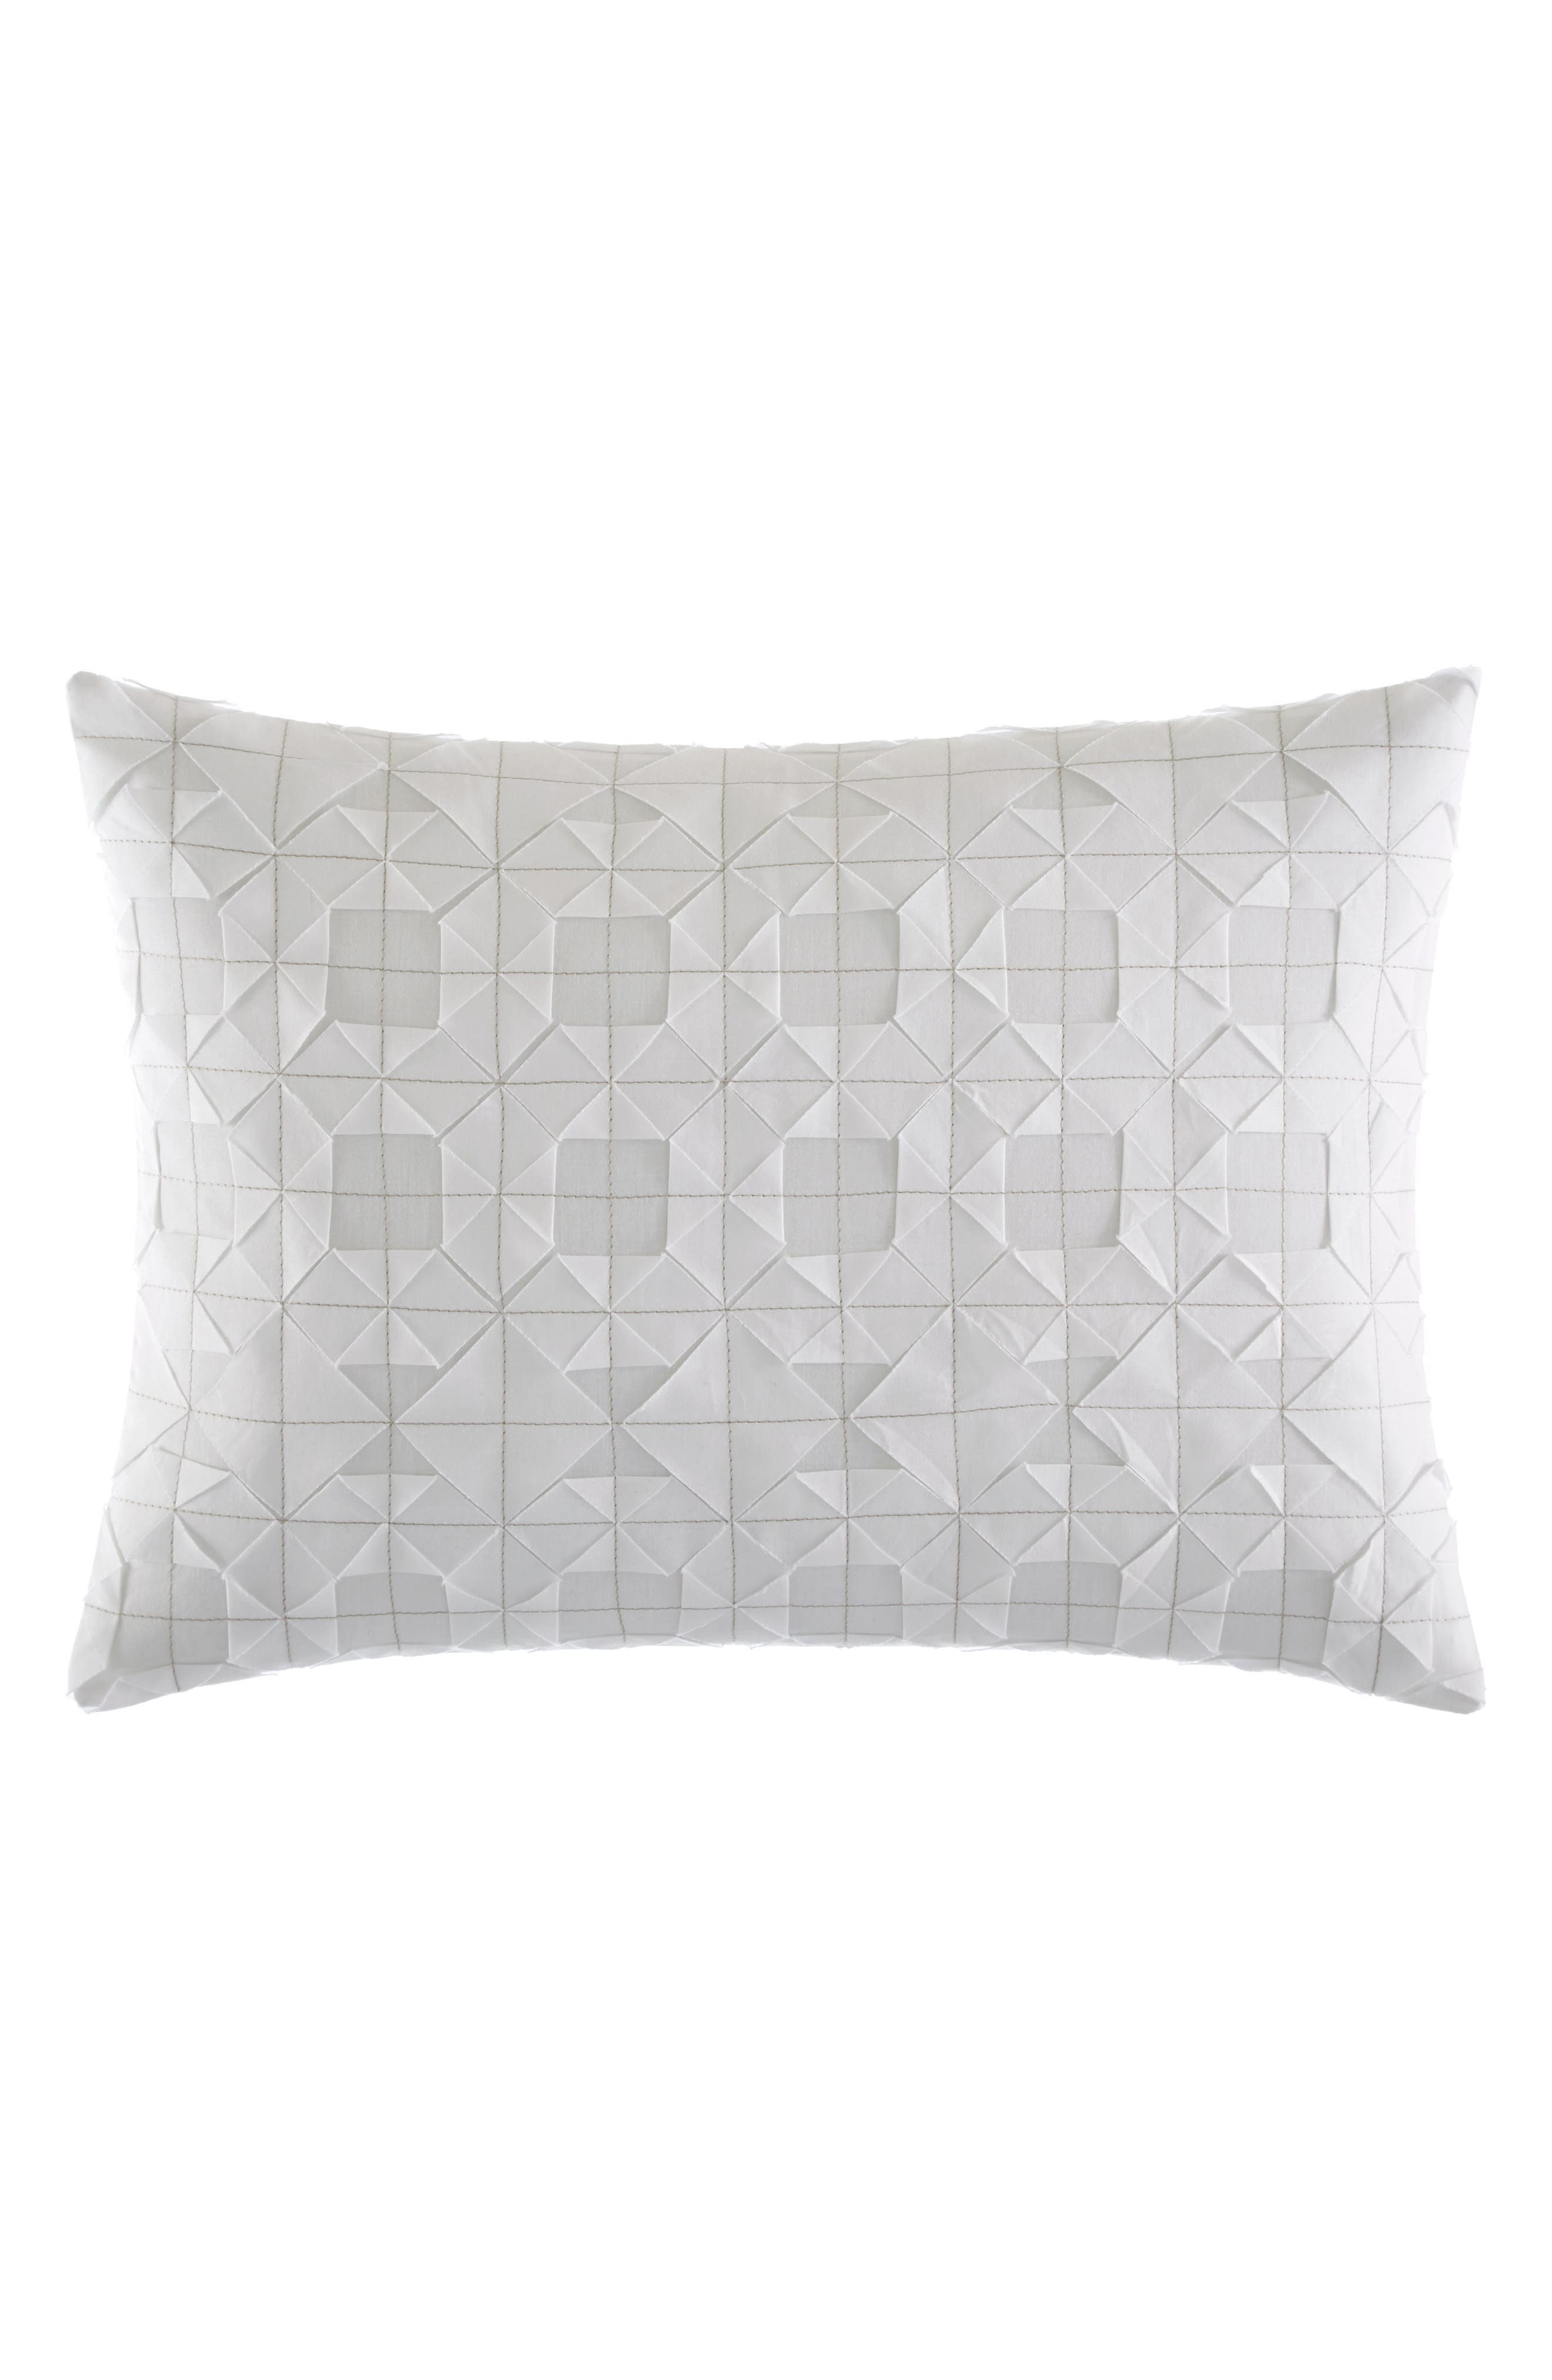 Vera Wang Tuille Origami Stitched Accent Pillow